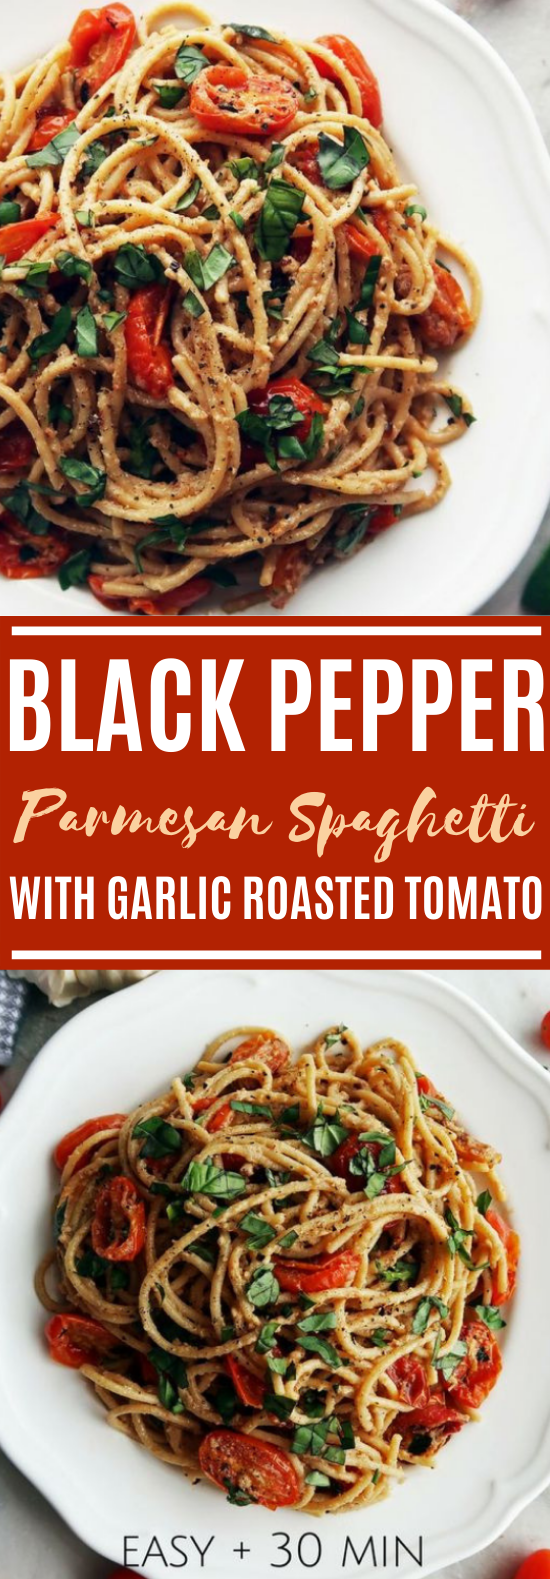 BLACK PEPPER & PARMESAN SPAGHETTI WITH GARLIC ROASTED TOMATOES #vegetarian #dinner #spaghetti #vegan #pasta